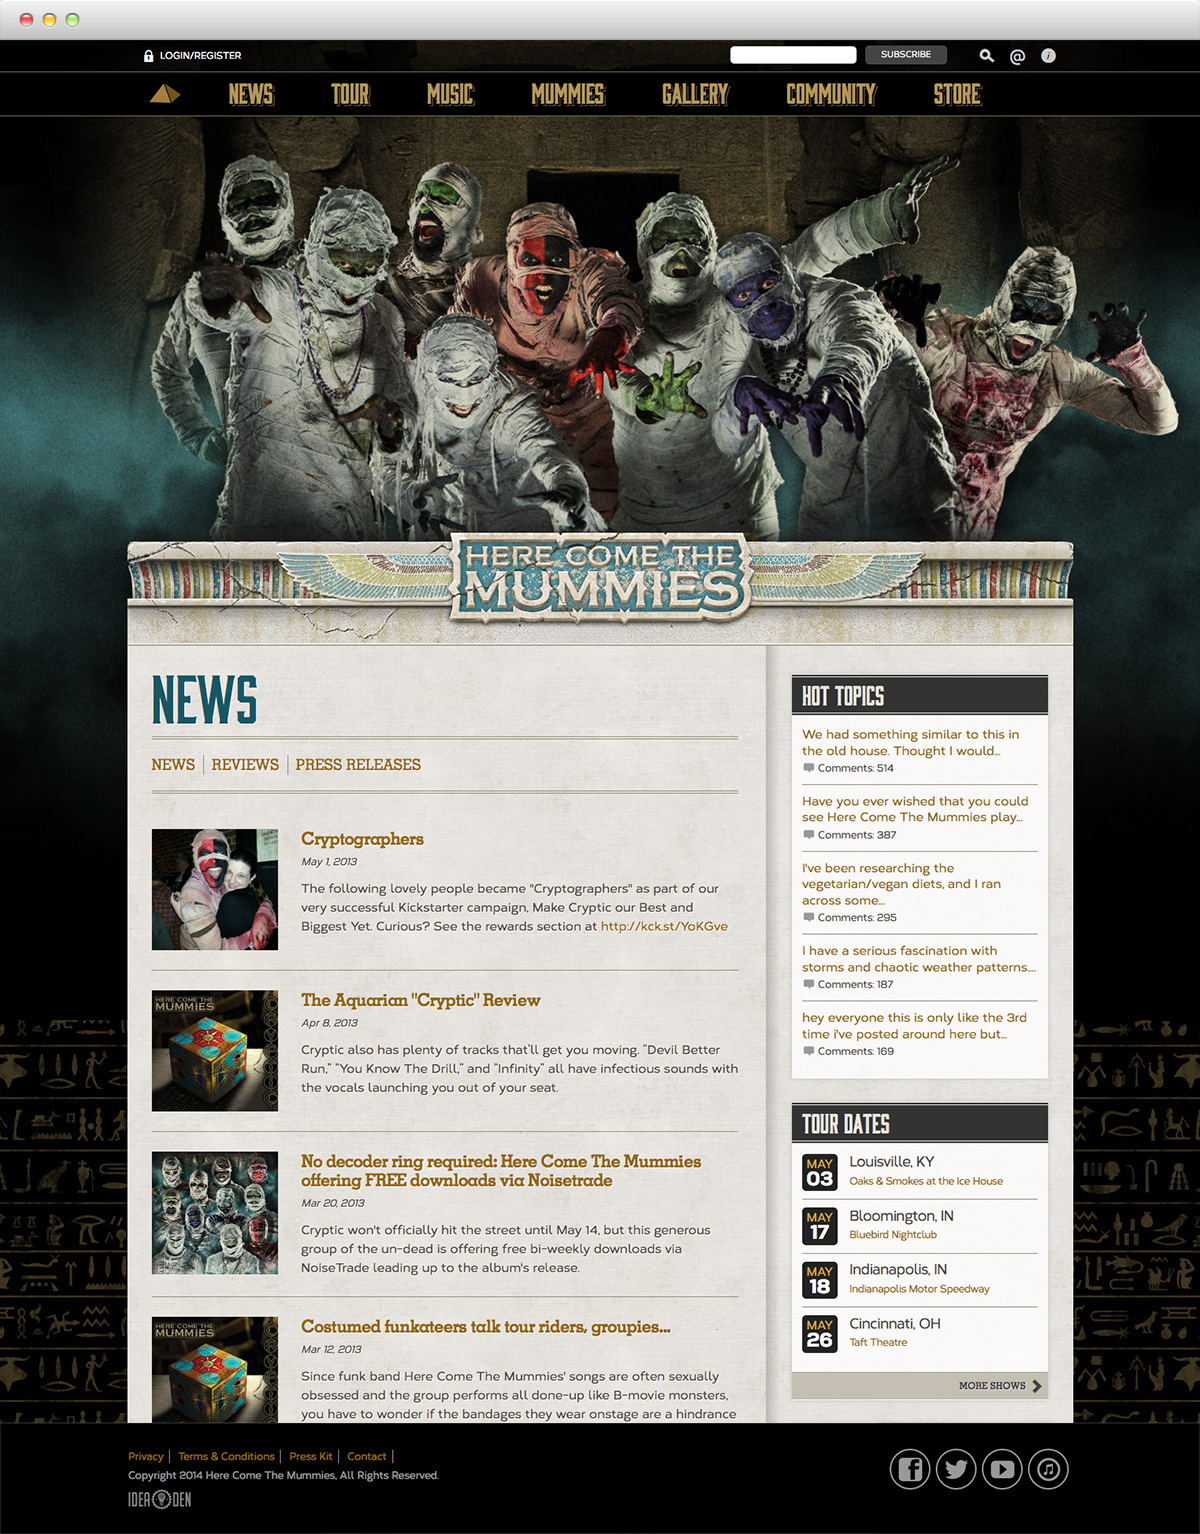 Here Come The Mummies - News